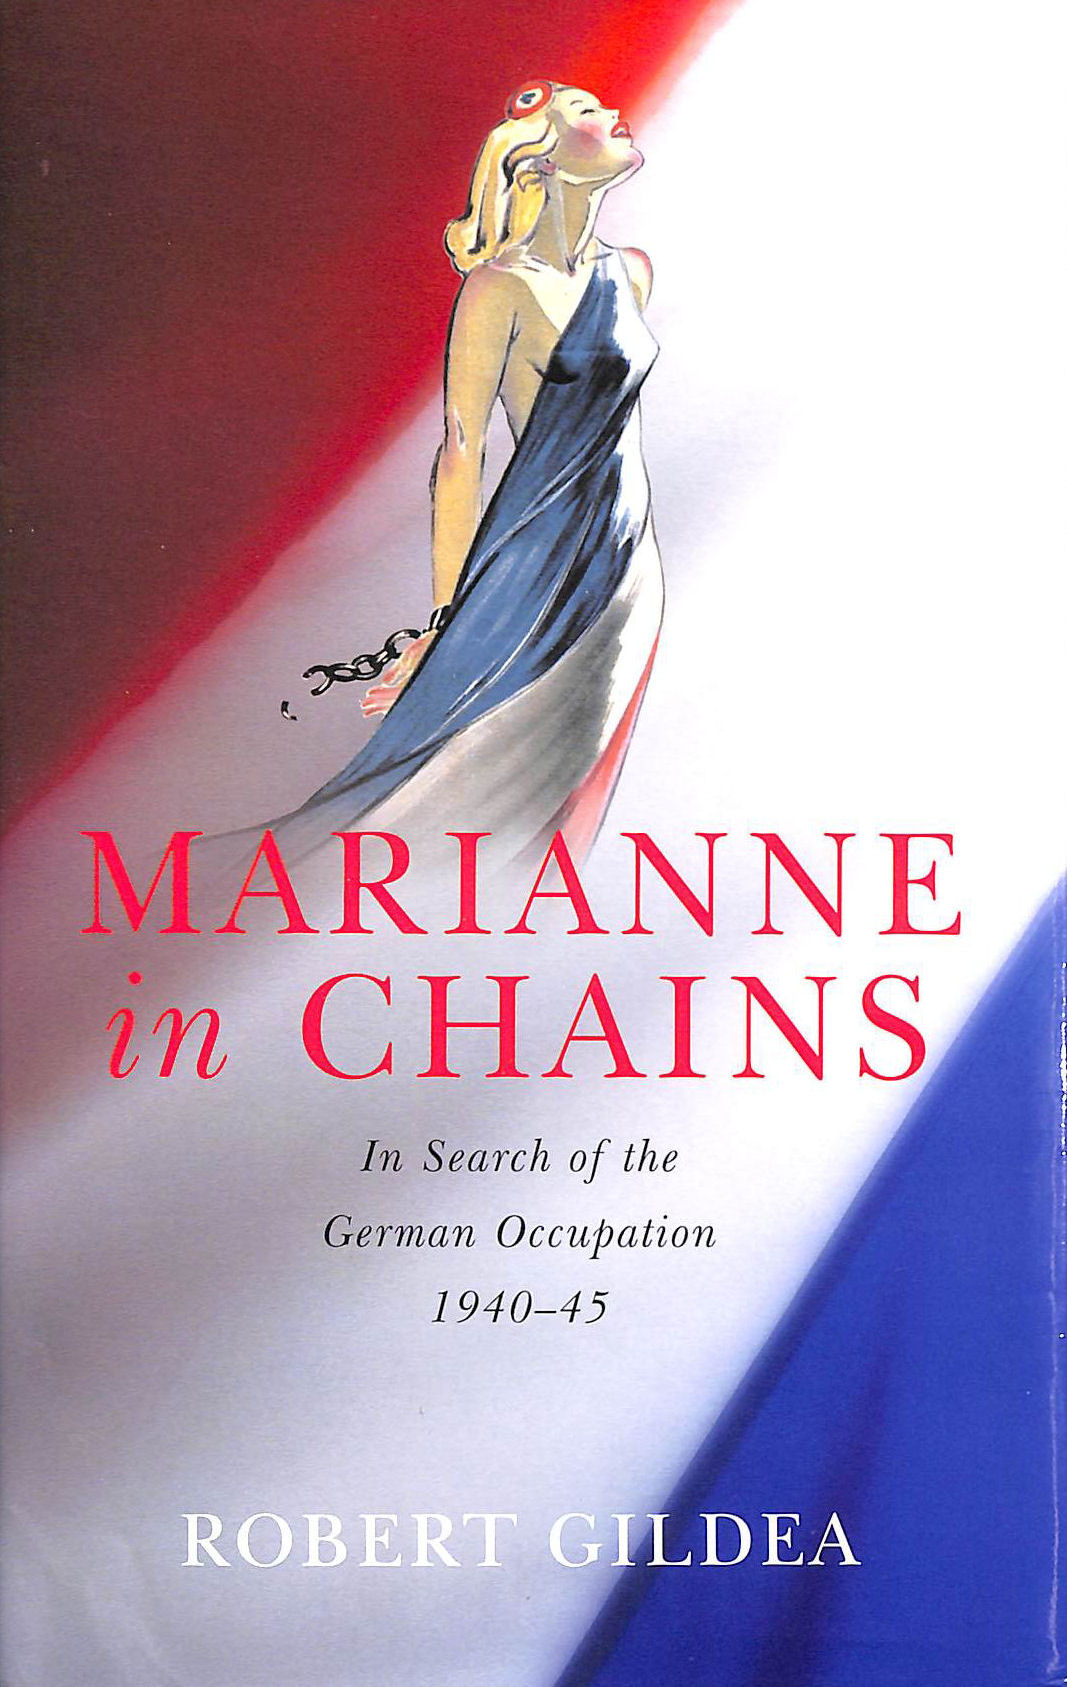 Image for Marianne In Chains: In Search of the German Occupation 1940-45